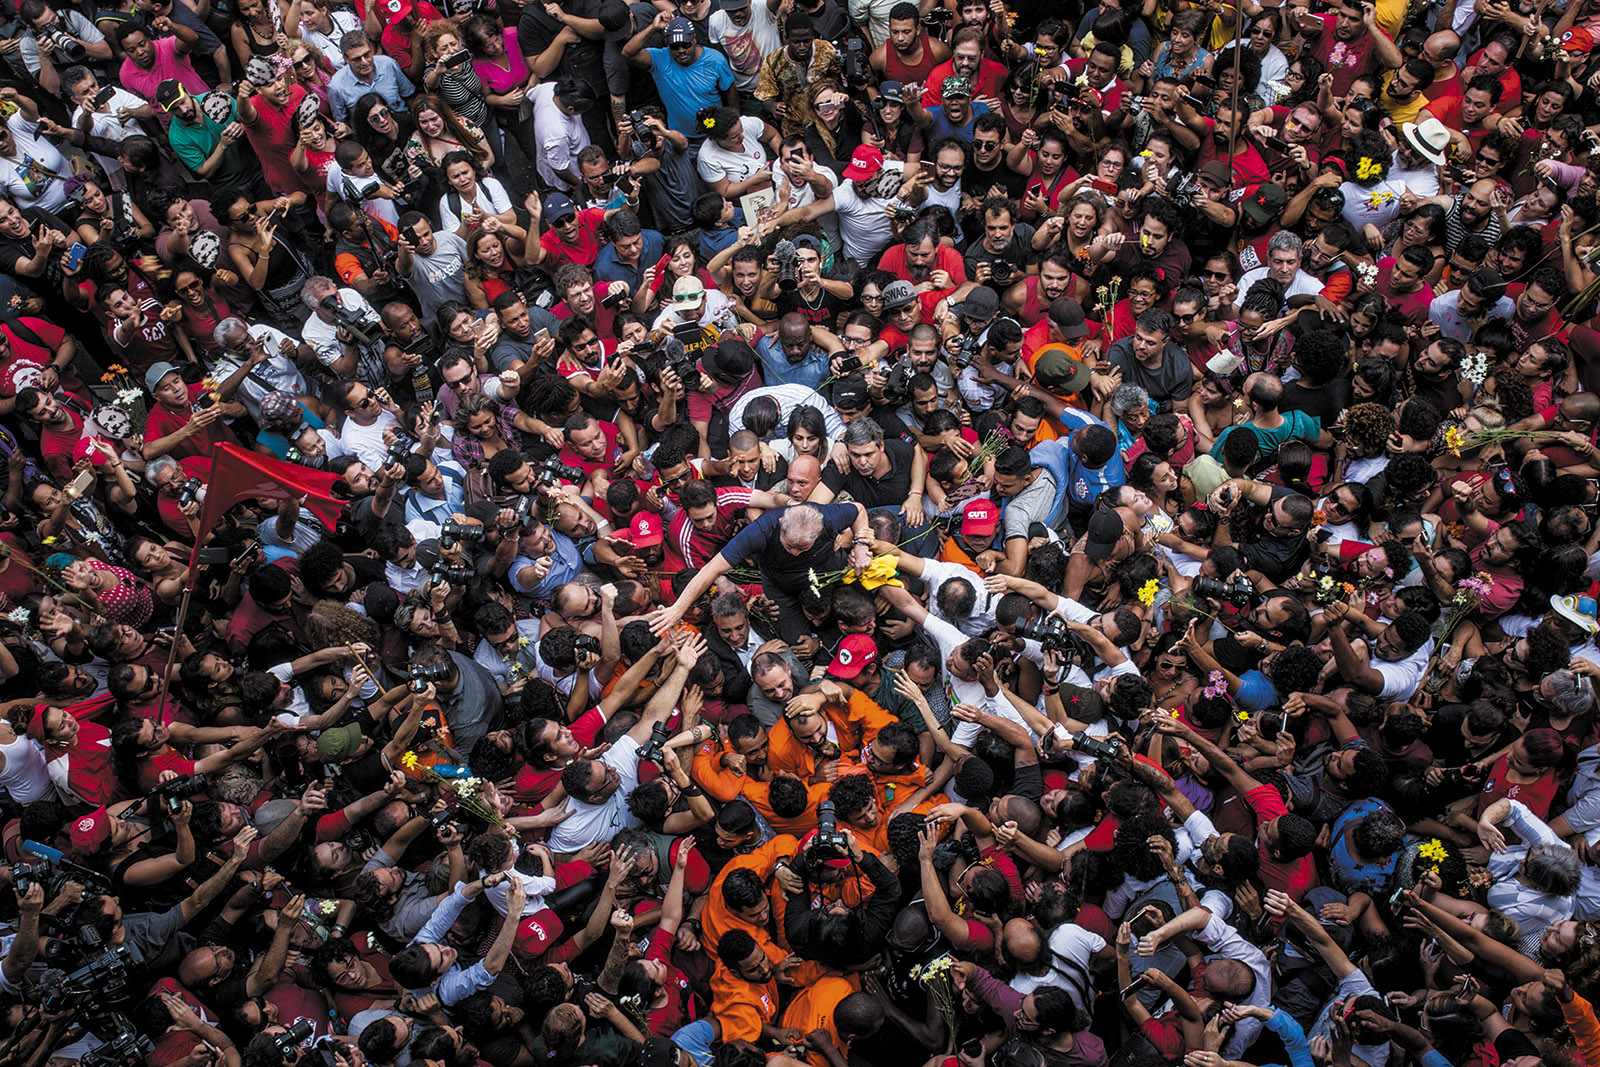 Former Brazilian president Luiz Inácio Lula da Silva with supporters on the day he agreed to start a prison sentence for corruption, São Paulo